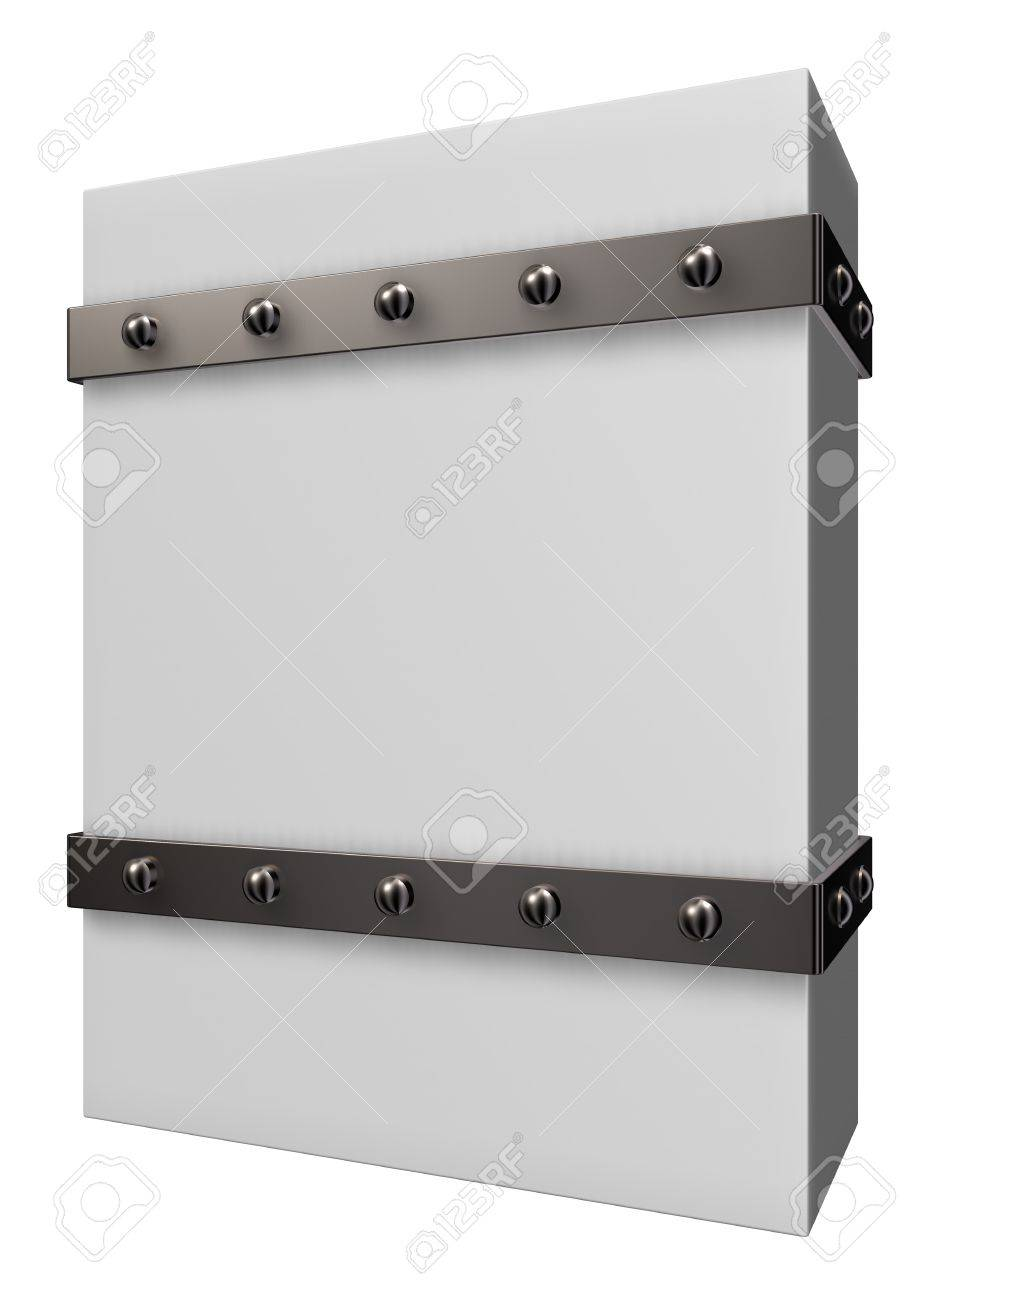 blank box with riveted iron bands - 3d illustration Stock Photo - 15312741